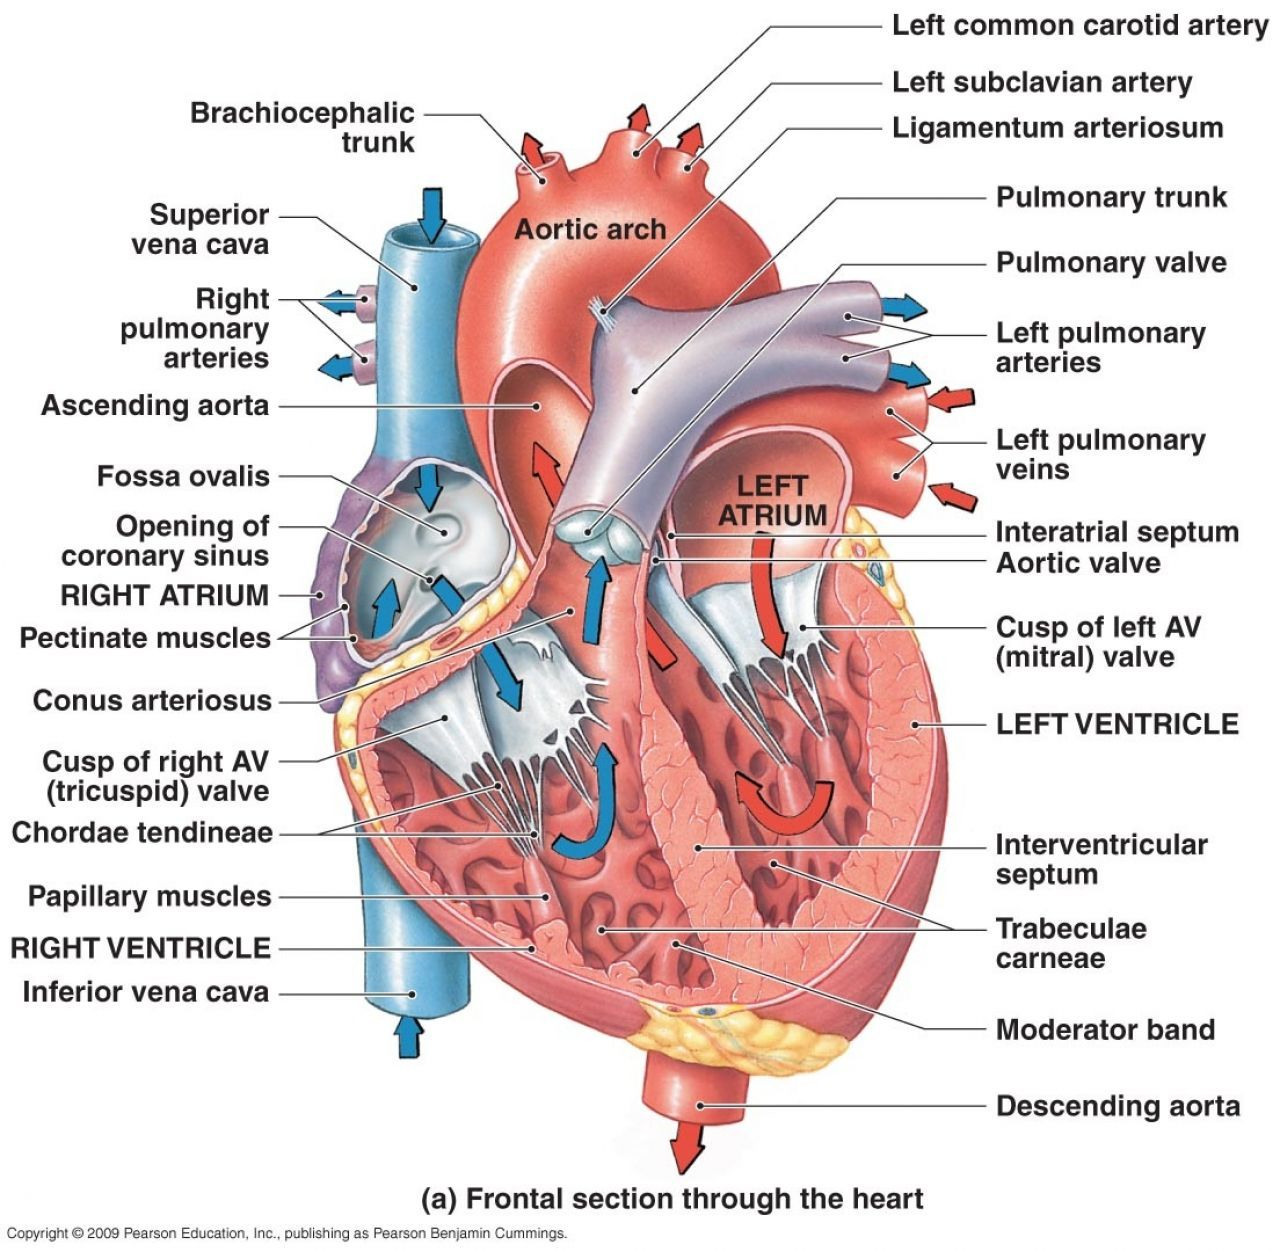 Related Image The Human Body Heart Anatomy Heart Diagram